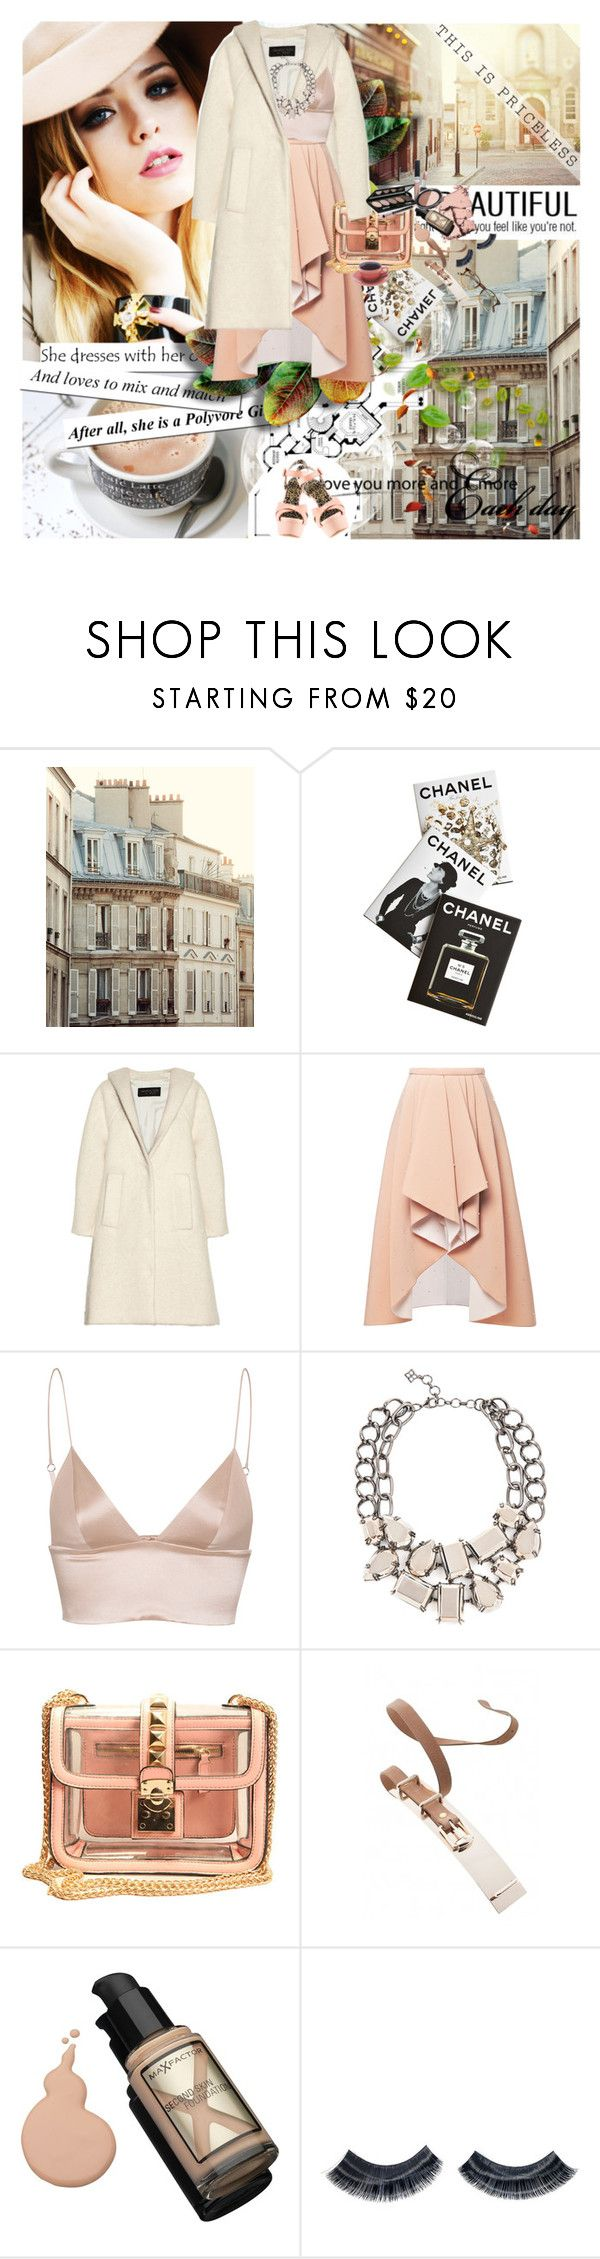 """Те, кто нужны, всегда далеко. за морями, океанами, полями."" by anul1 ❤ liked on Polyvore featuring Prada, Shabby Chic, Assouline Publishing, Giambattista Valli, Rodarte, T By Alexander Wang, Jessica Simpson, BCBGMAXAZRIA, Max Factor and Isadora"